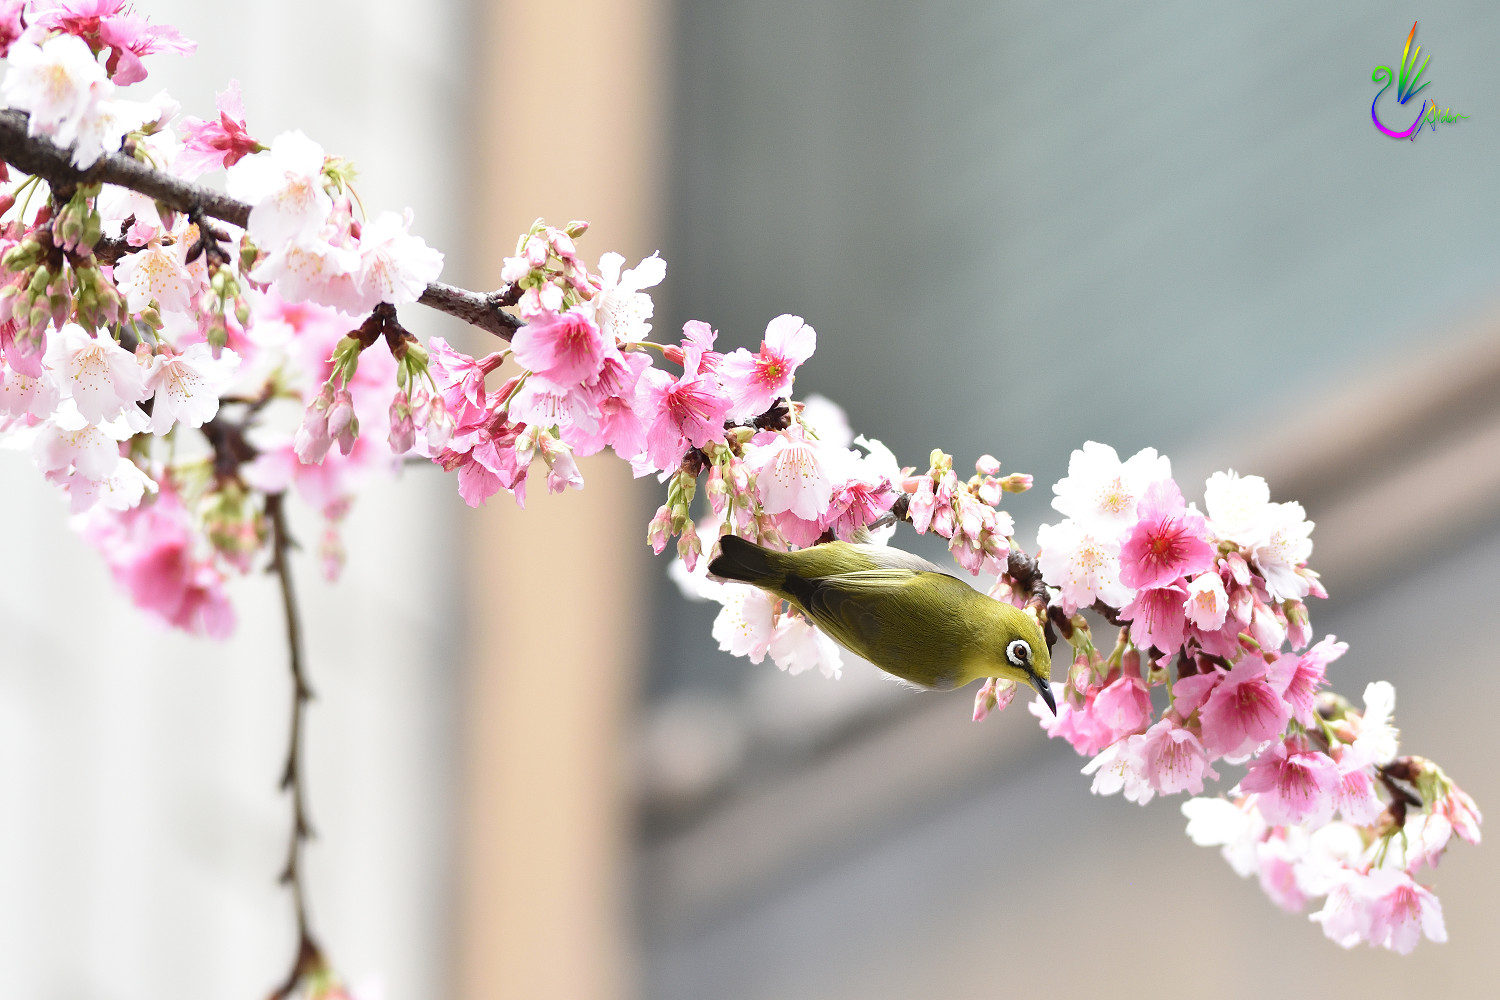 Sakura_White-eye_0162